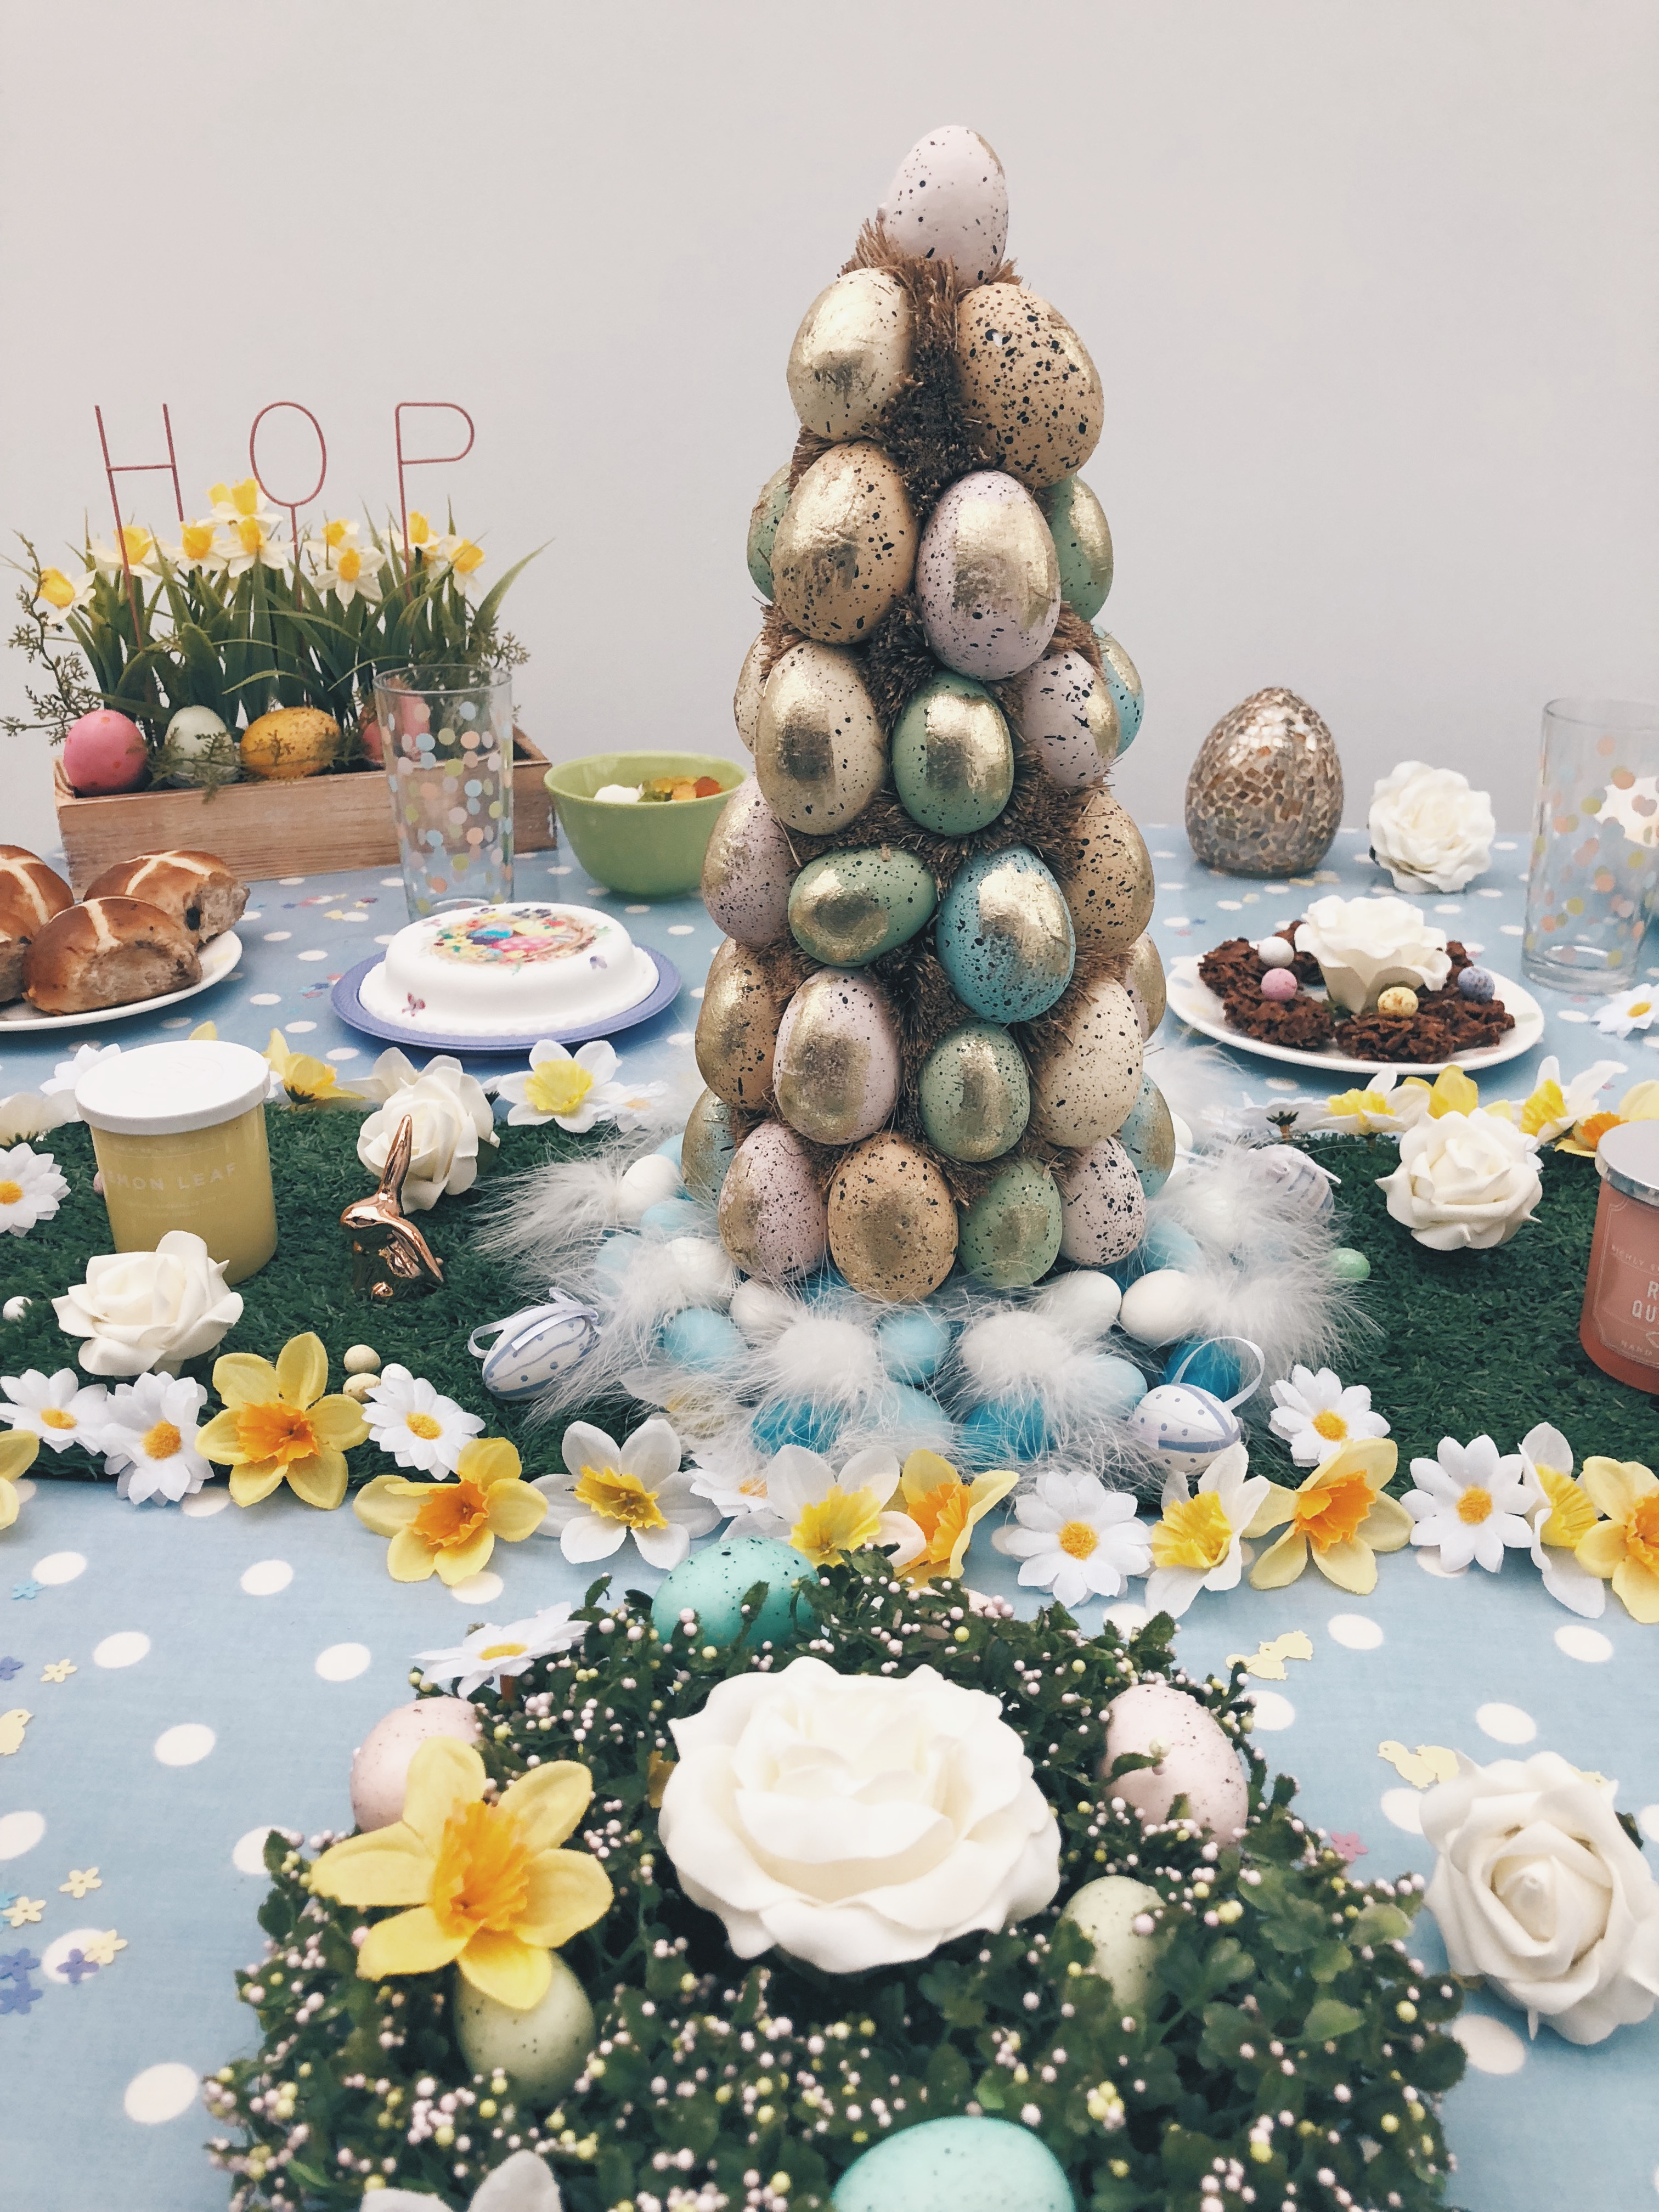 HOW TO STYLE AN EASTER TABLE: PERFECT PASTELS